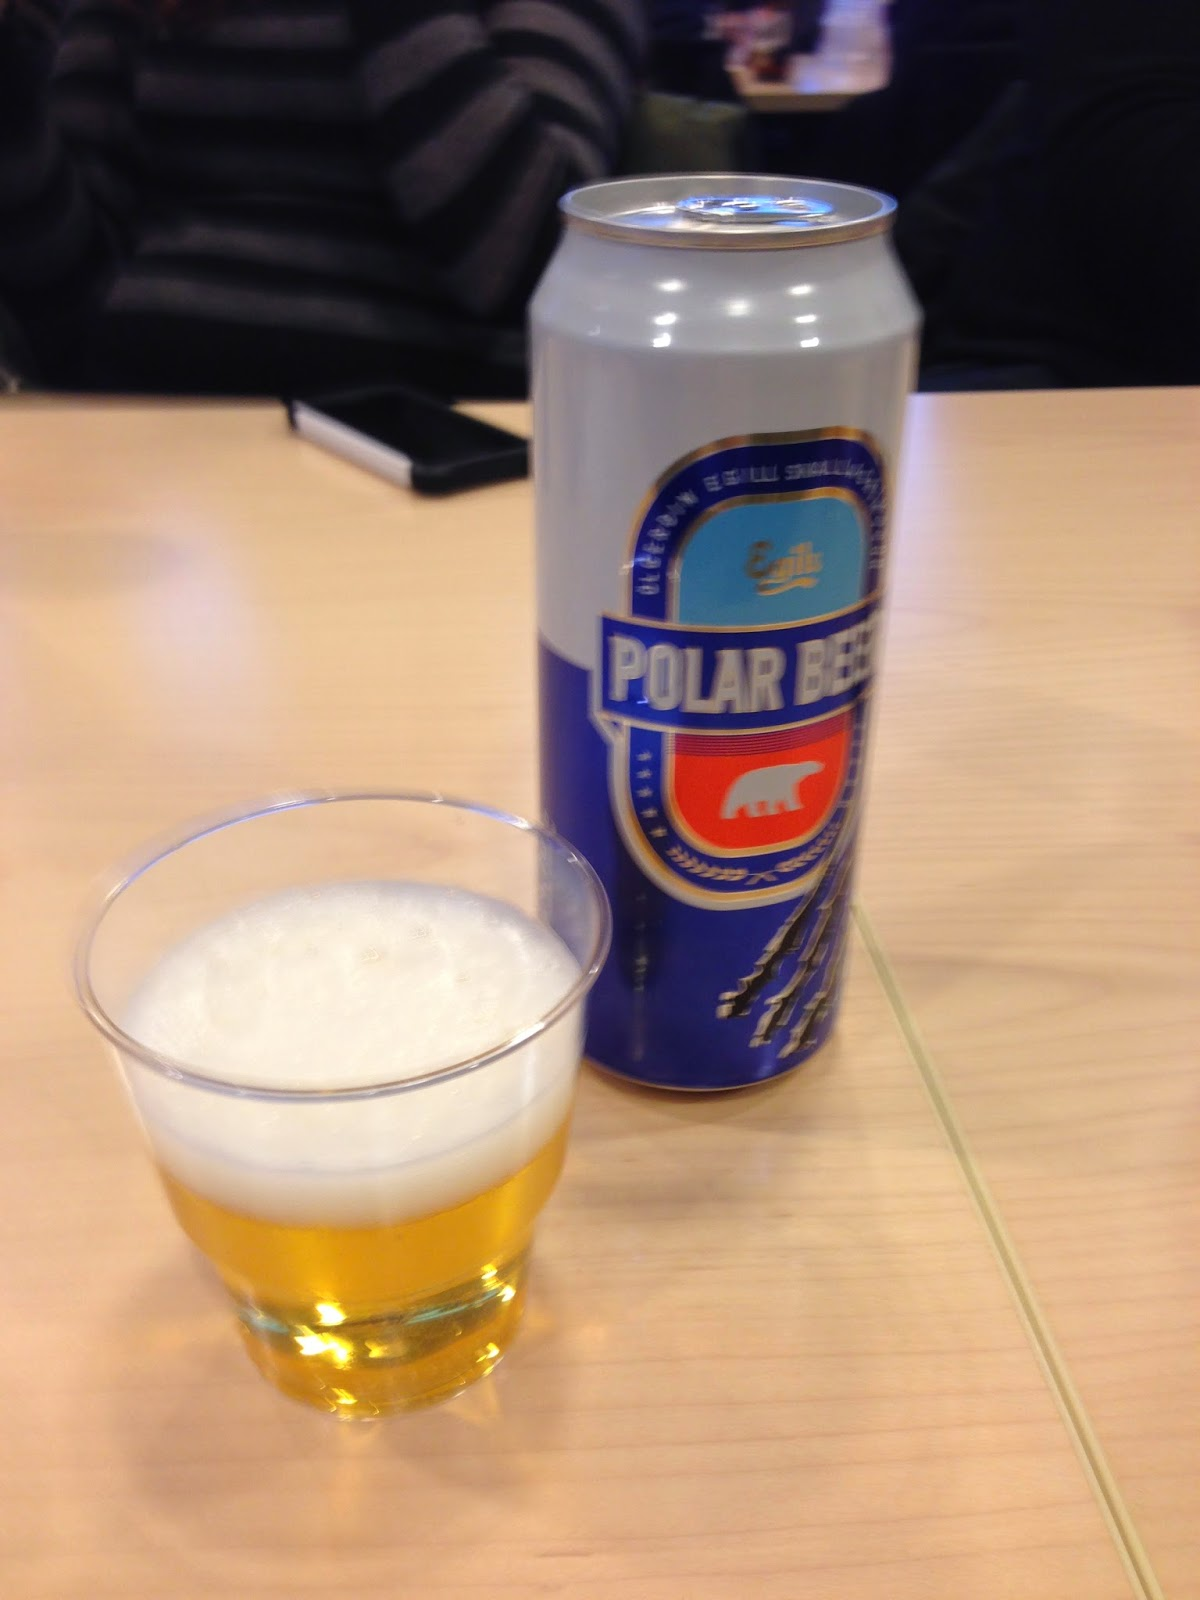 polar bear beer iceland